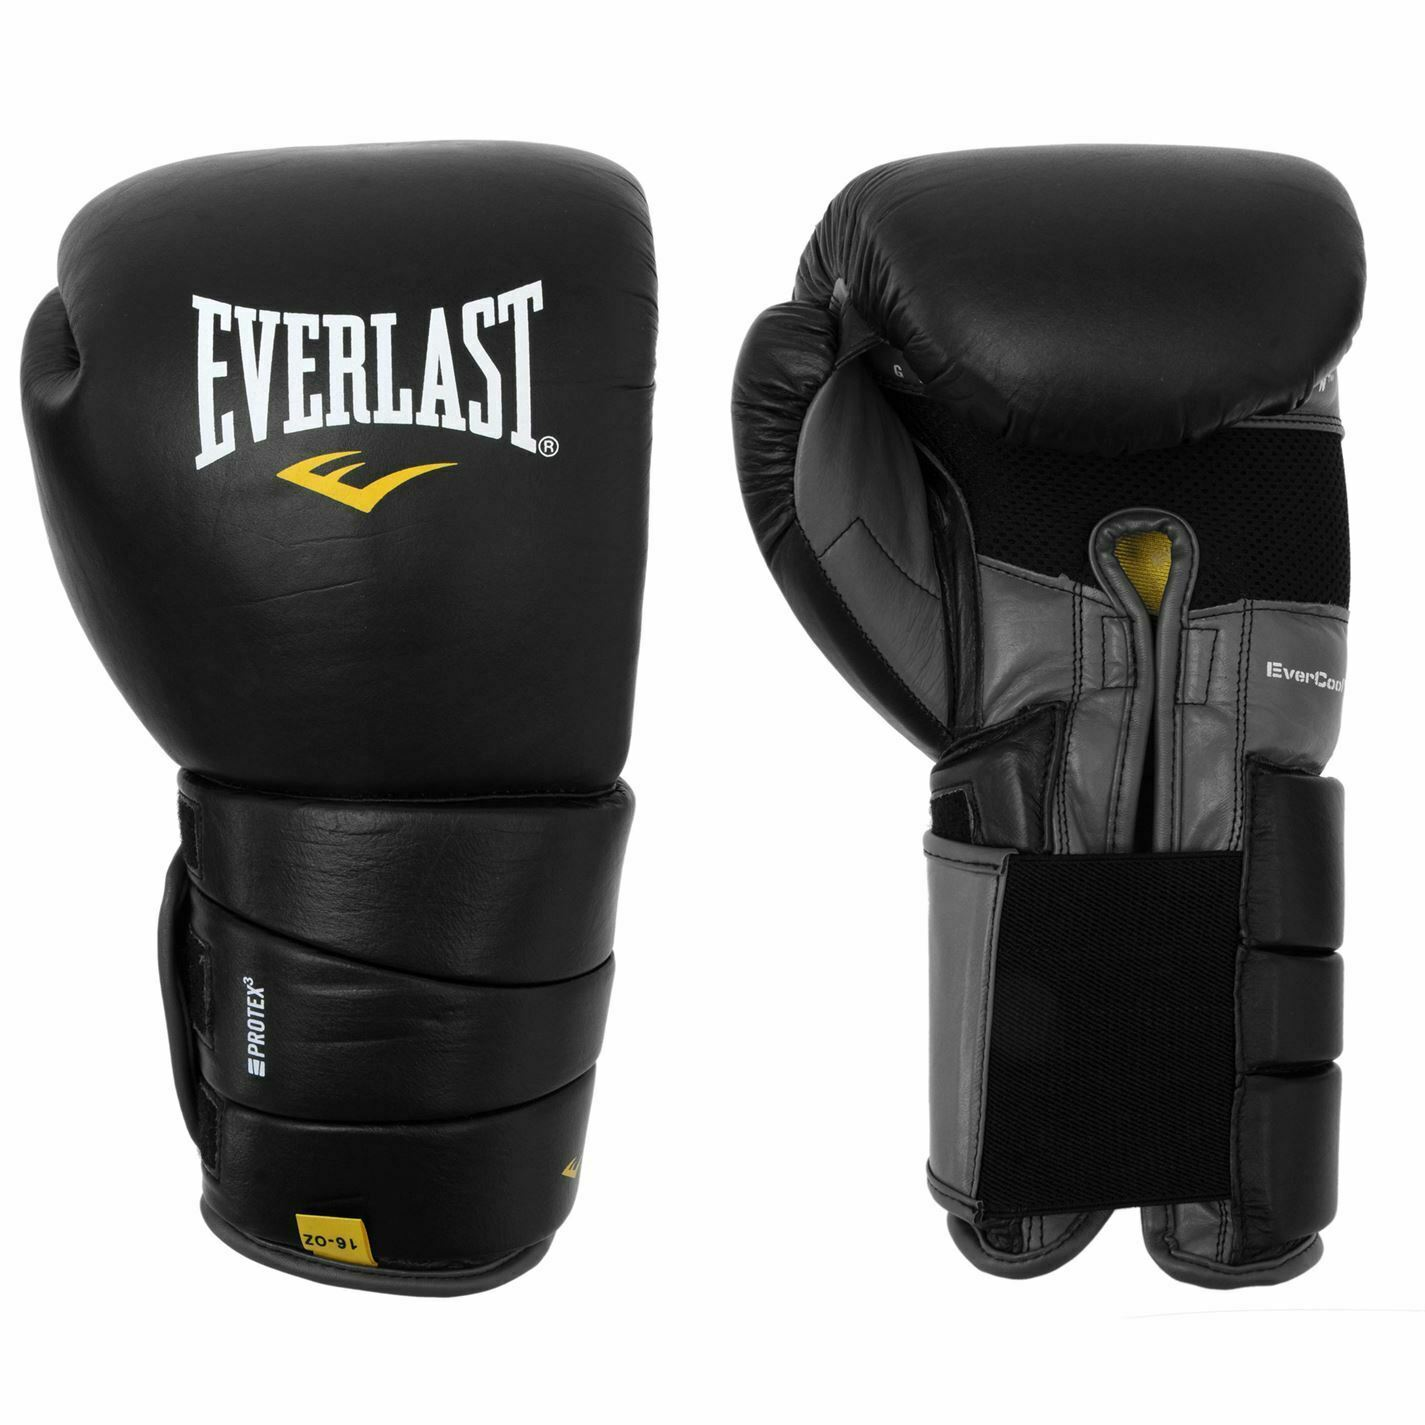 Everlast pelle Prossoex 3 Boxe Guanti Nero Palestra Fitness Borsa Sparring Guanti